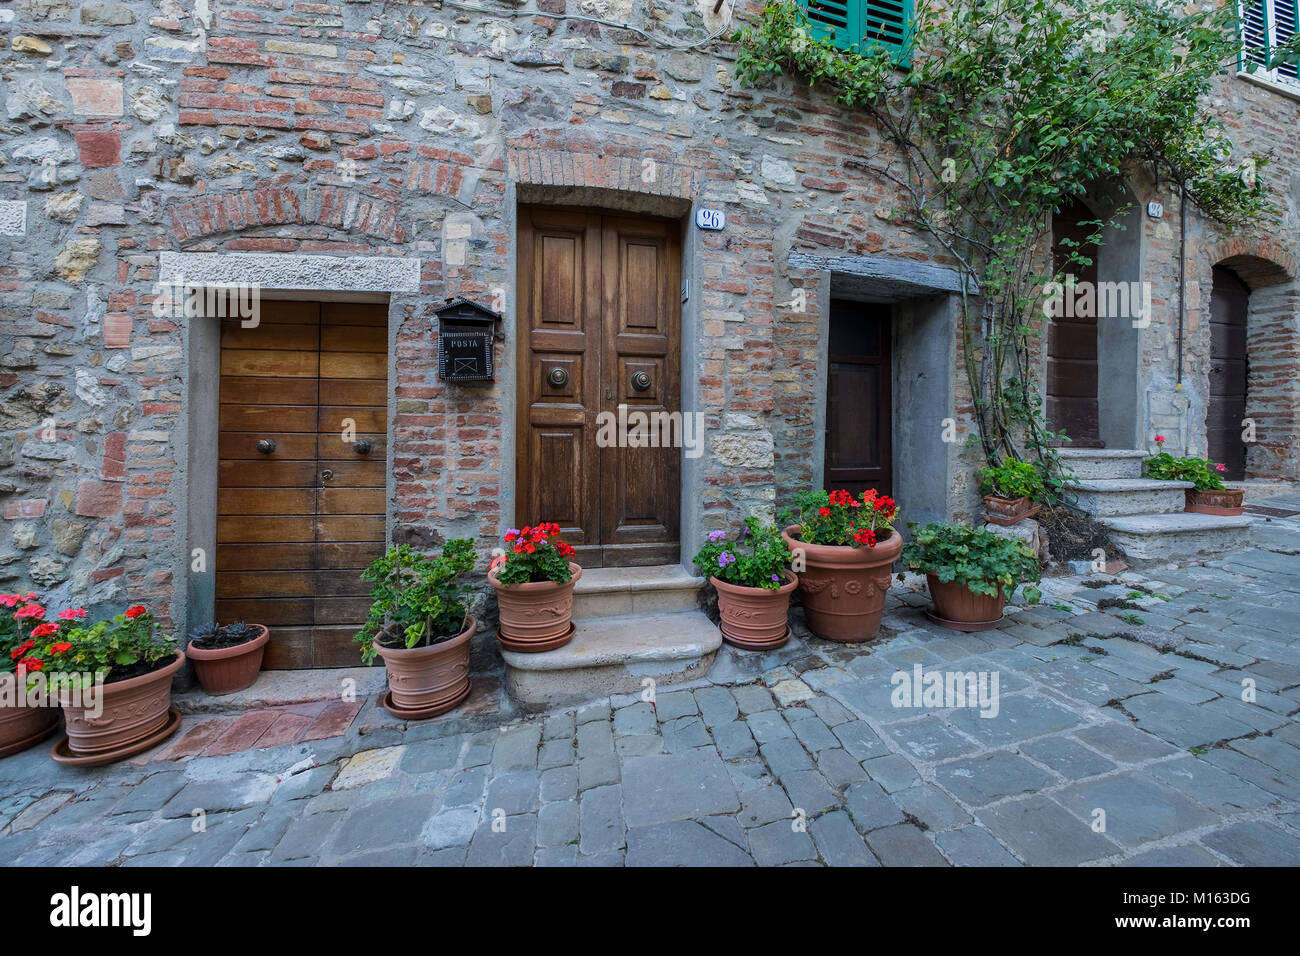 A view of the village of San Casciano dei Bagni, Italy. San ...